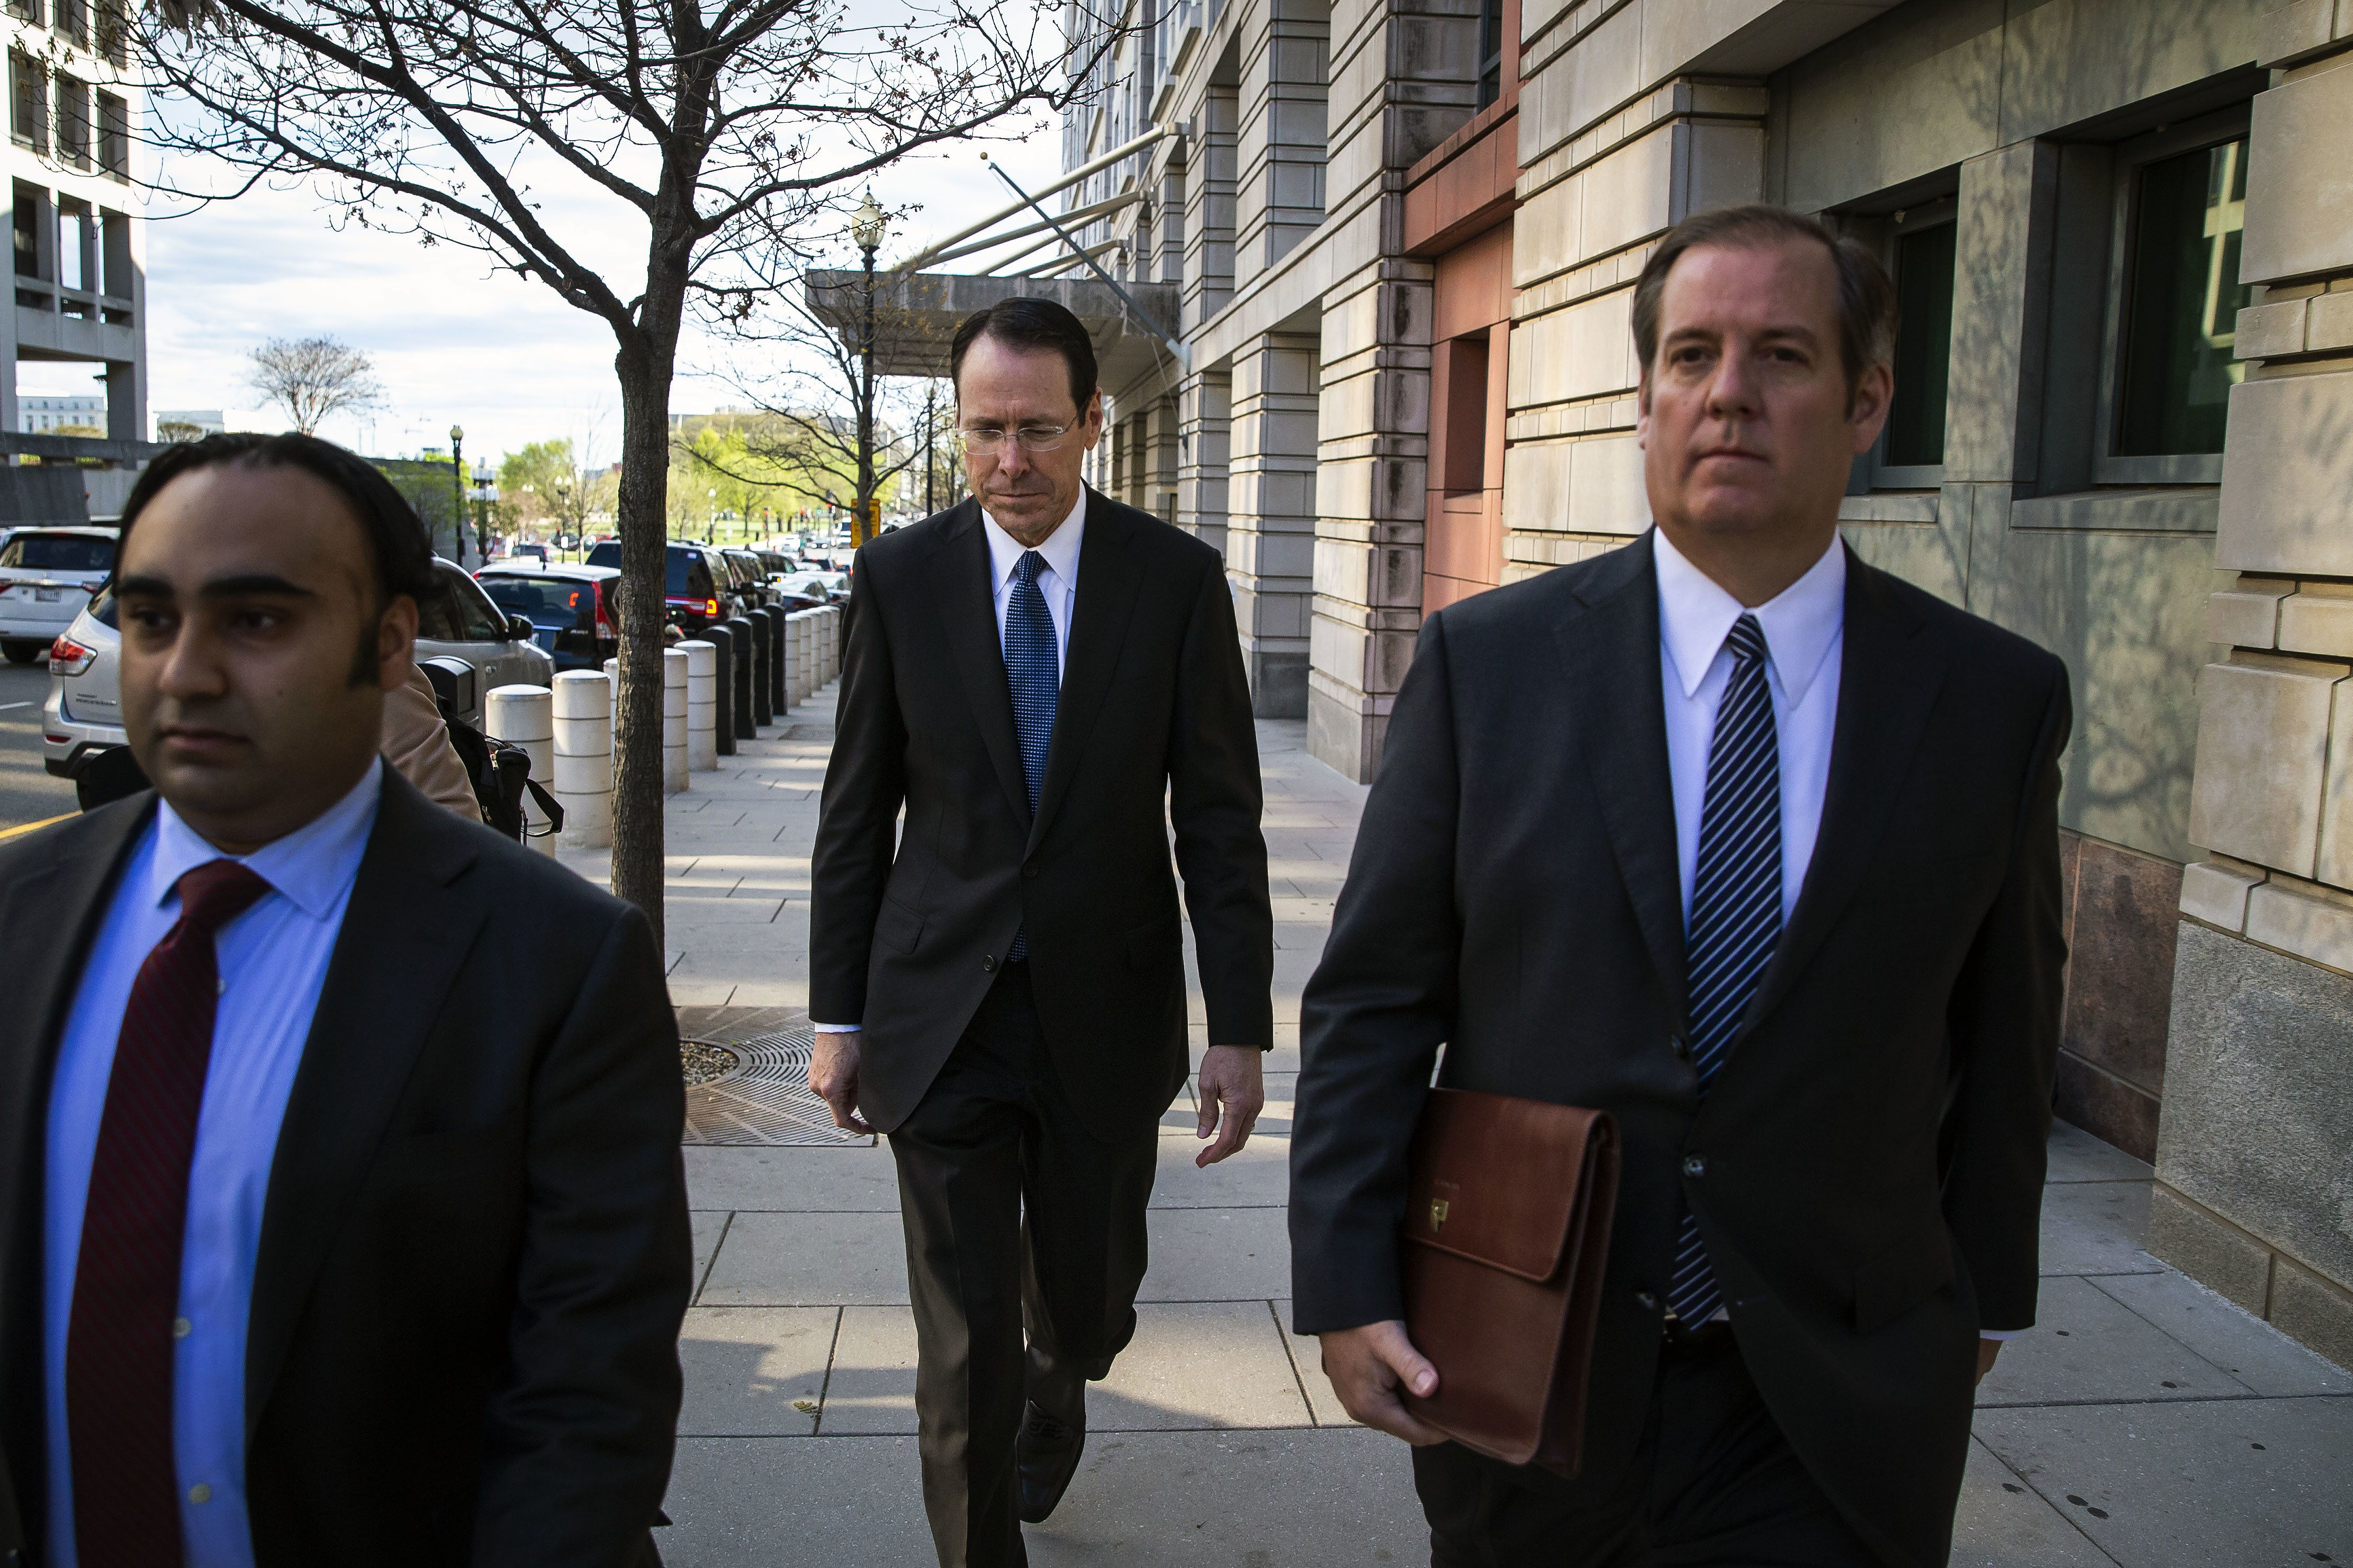 AT&T CEO and ChairmanRandall Stephenson exits federal court in April